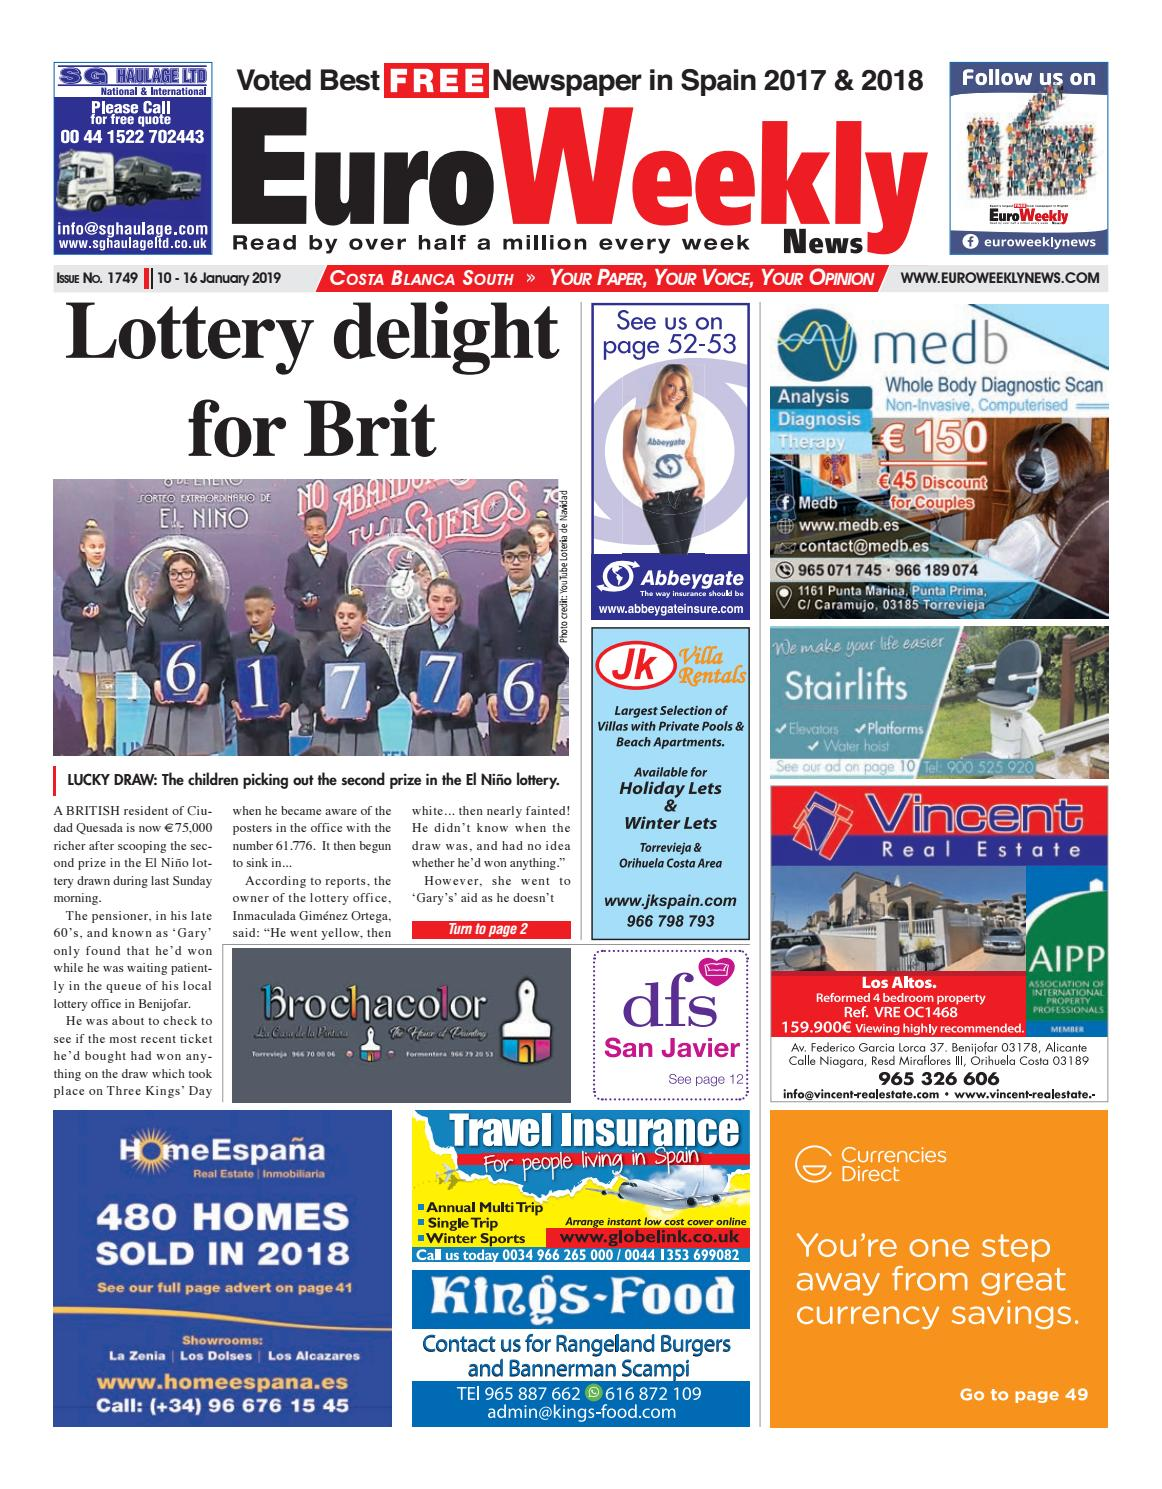 Euro Weekly News Costa Blanca South 10 16 January 2019 Issue 1749 By Euro Weekly News Media S A Issuu